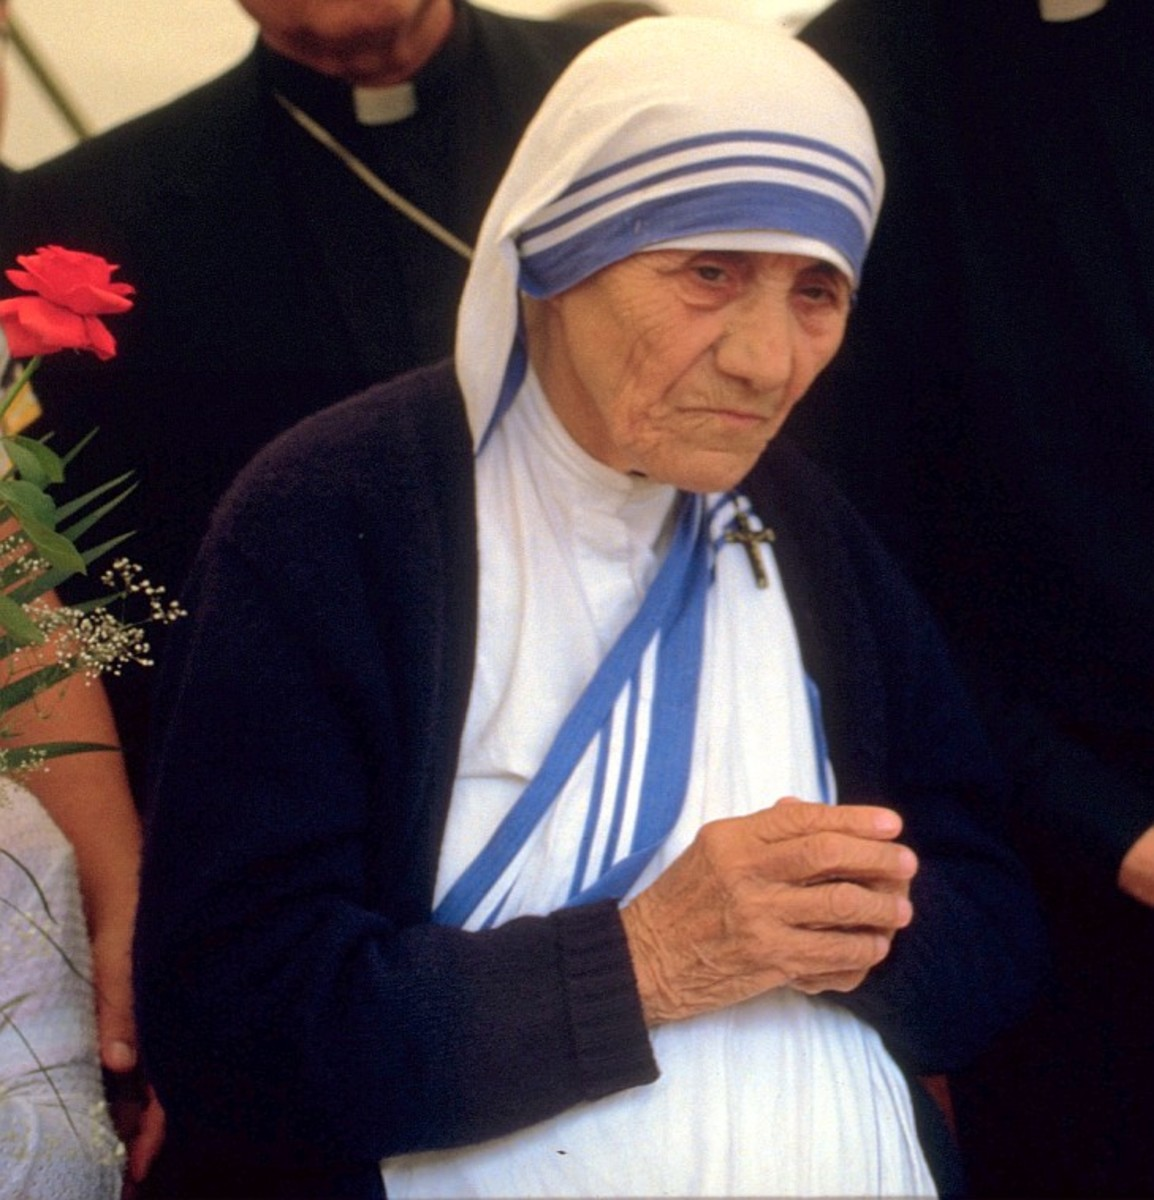 When we think of someone potentially reaching some level of perfection, Mother Theresa is a figure that often comes to mind.